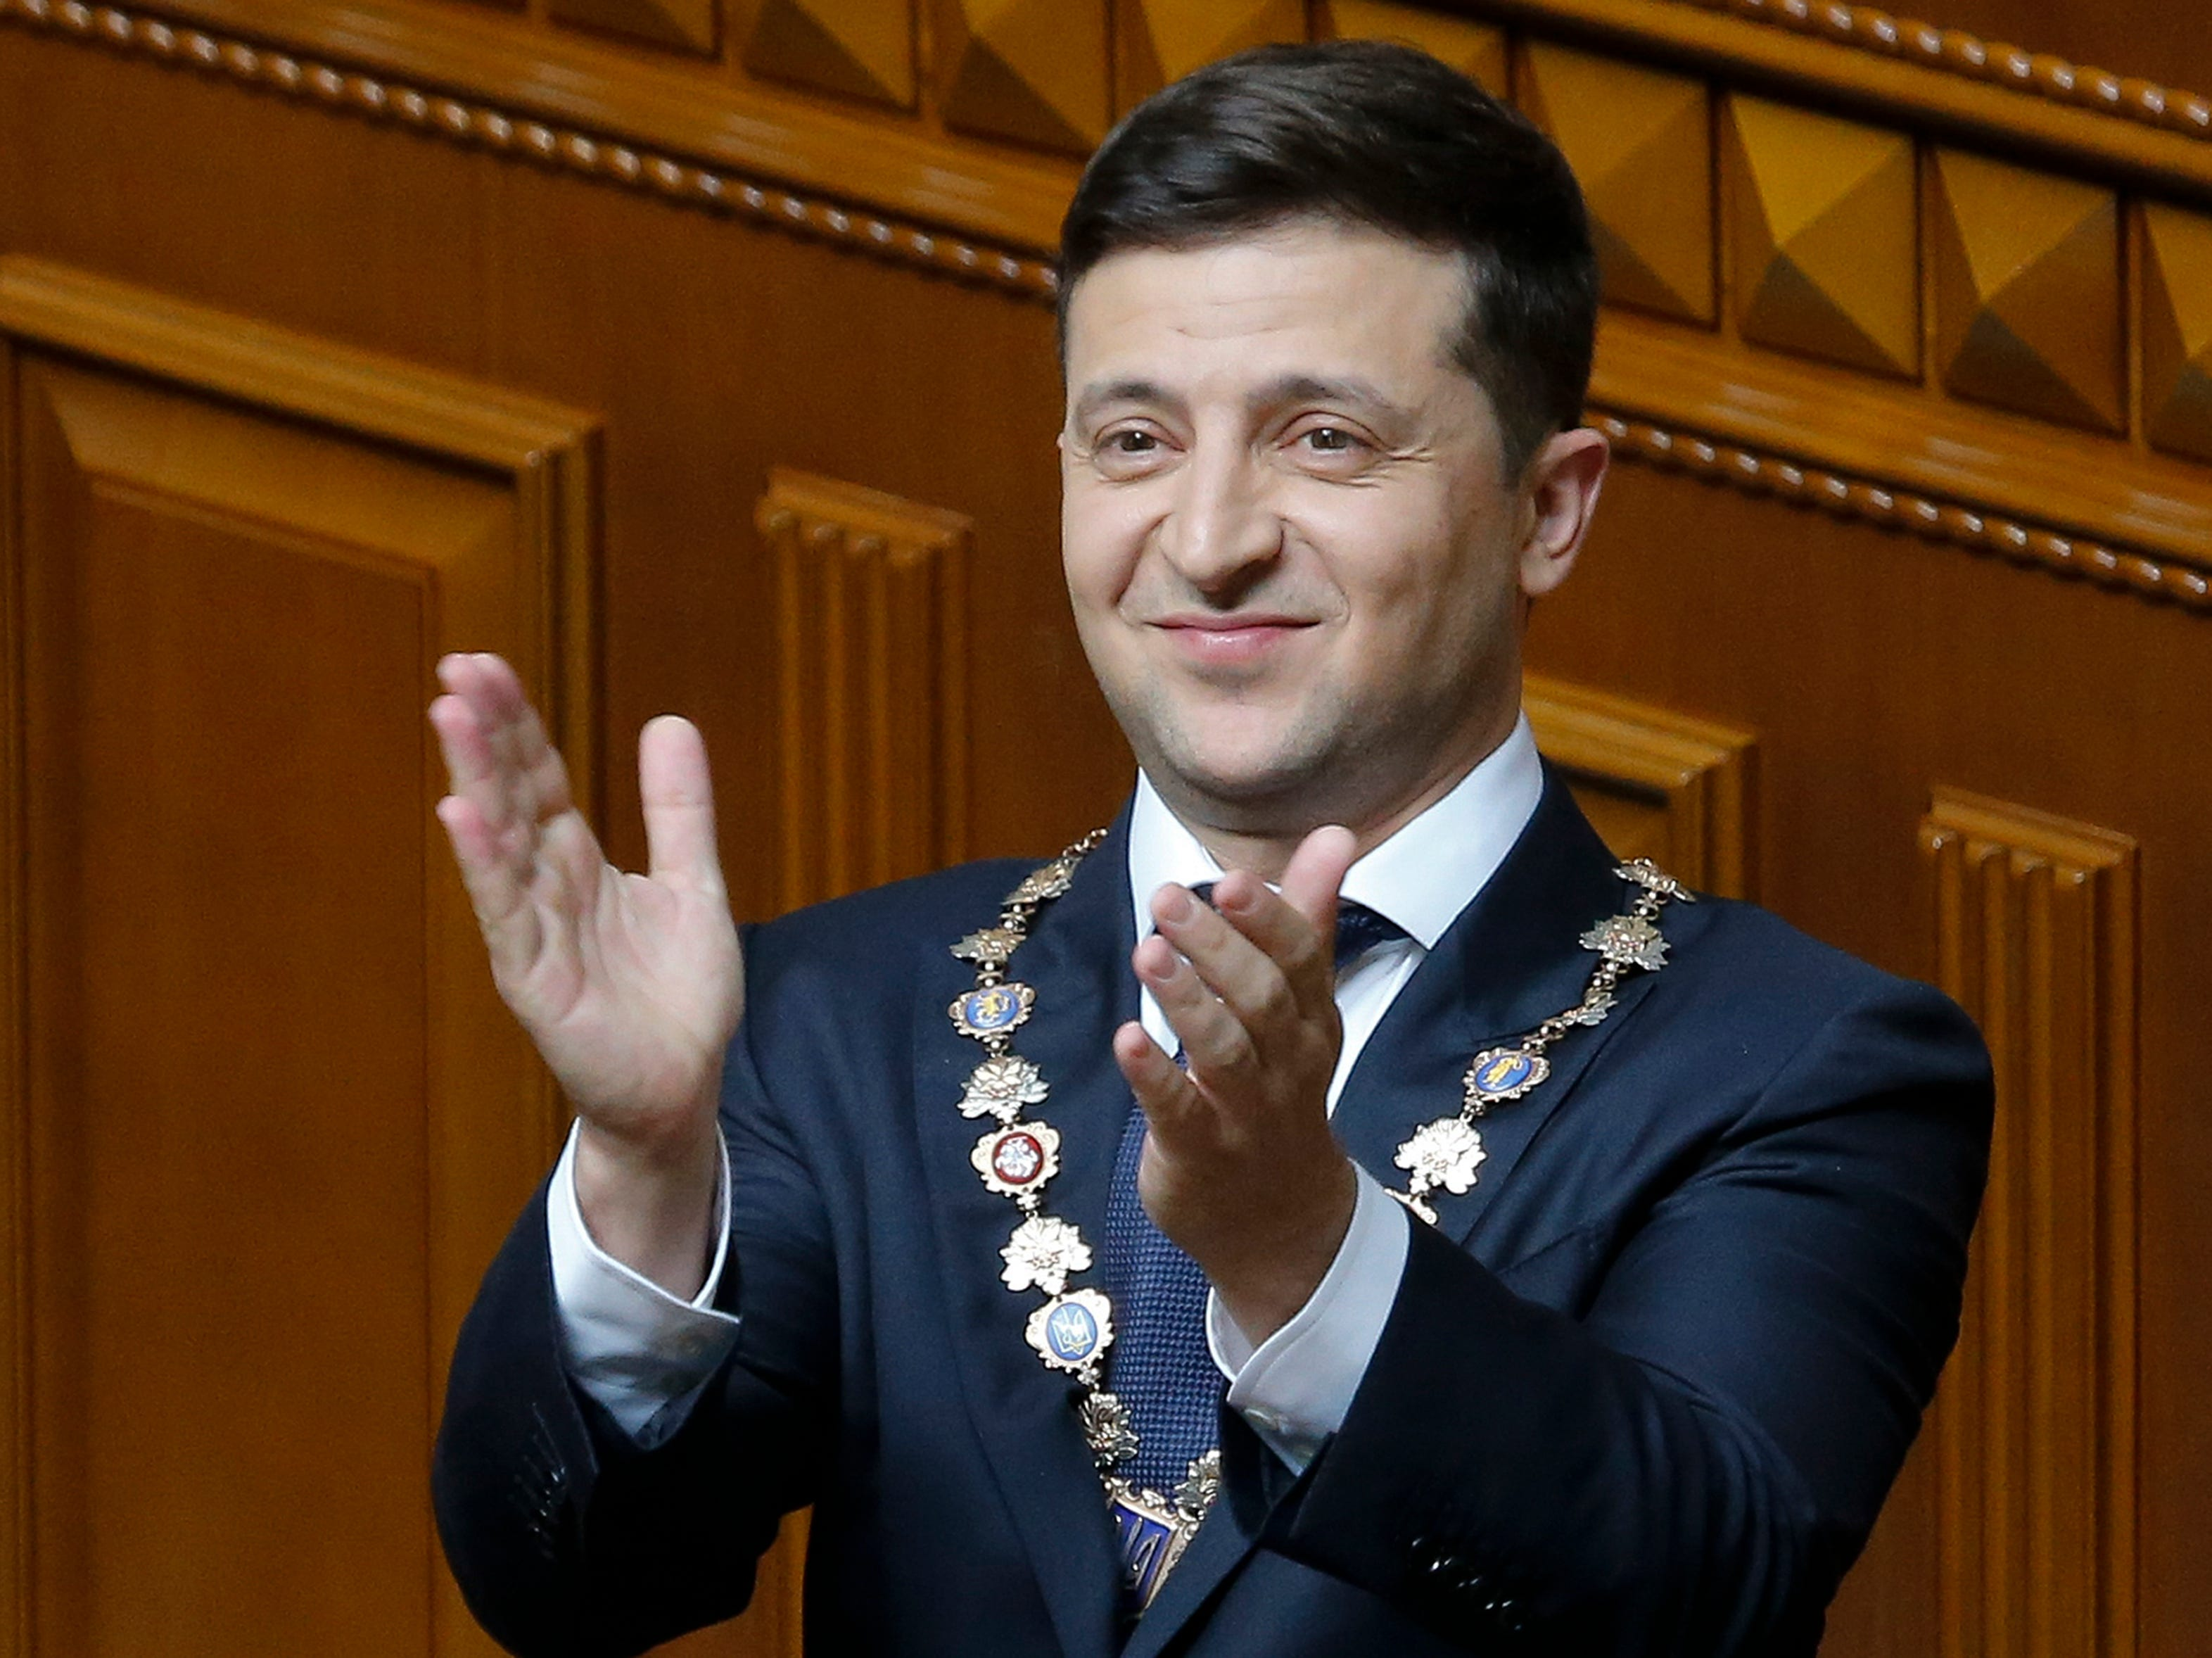 Volodymyr Zelenskiy gestures during his inauguration ceremony in Kiev, Ukraine, Monday, May 20, 2019. The television star was sworn in as Ukraine's next president after he beat the incumbent at the polls last month. The ceremony was held at the Ukrainian parliament in Kiev on Monday morning.